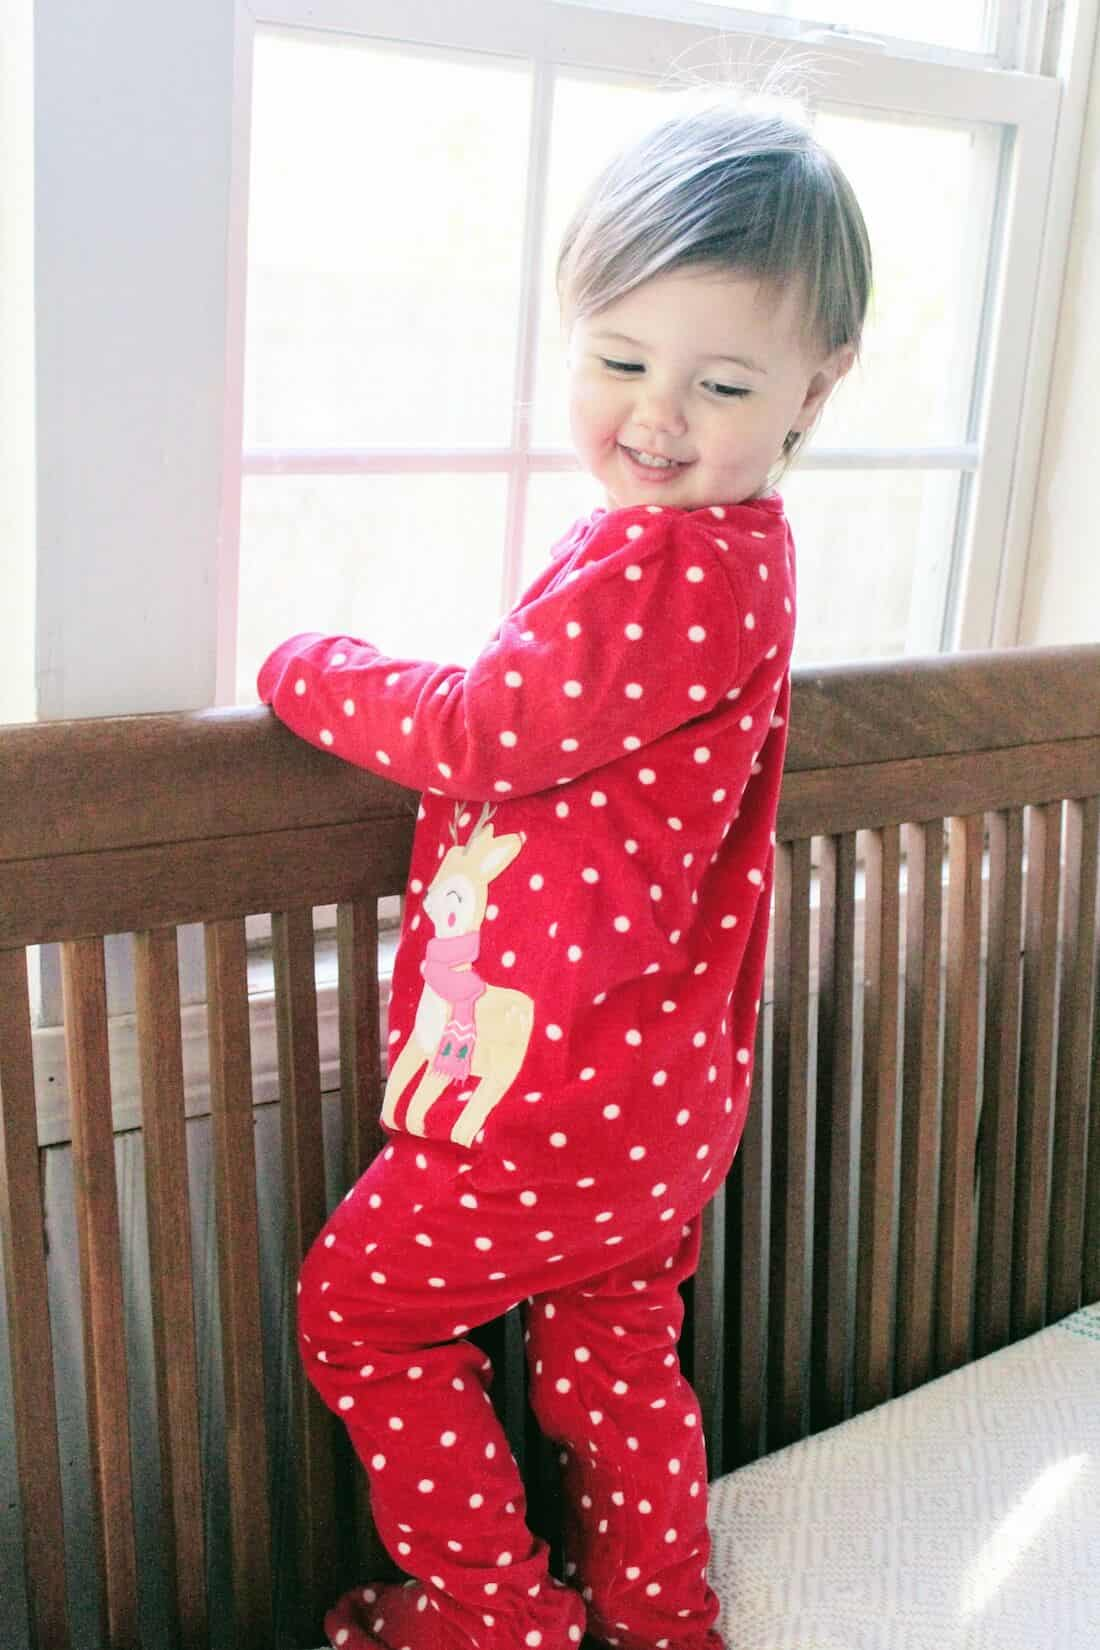 Toddler girl in Christmas pajamas stands in crib.